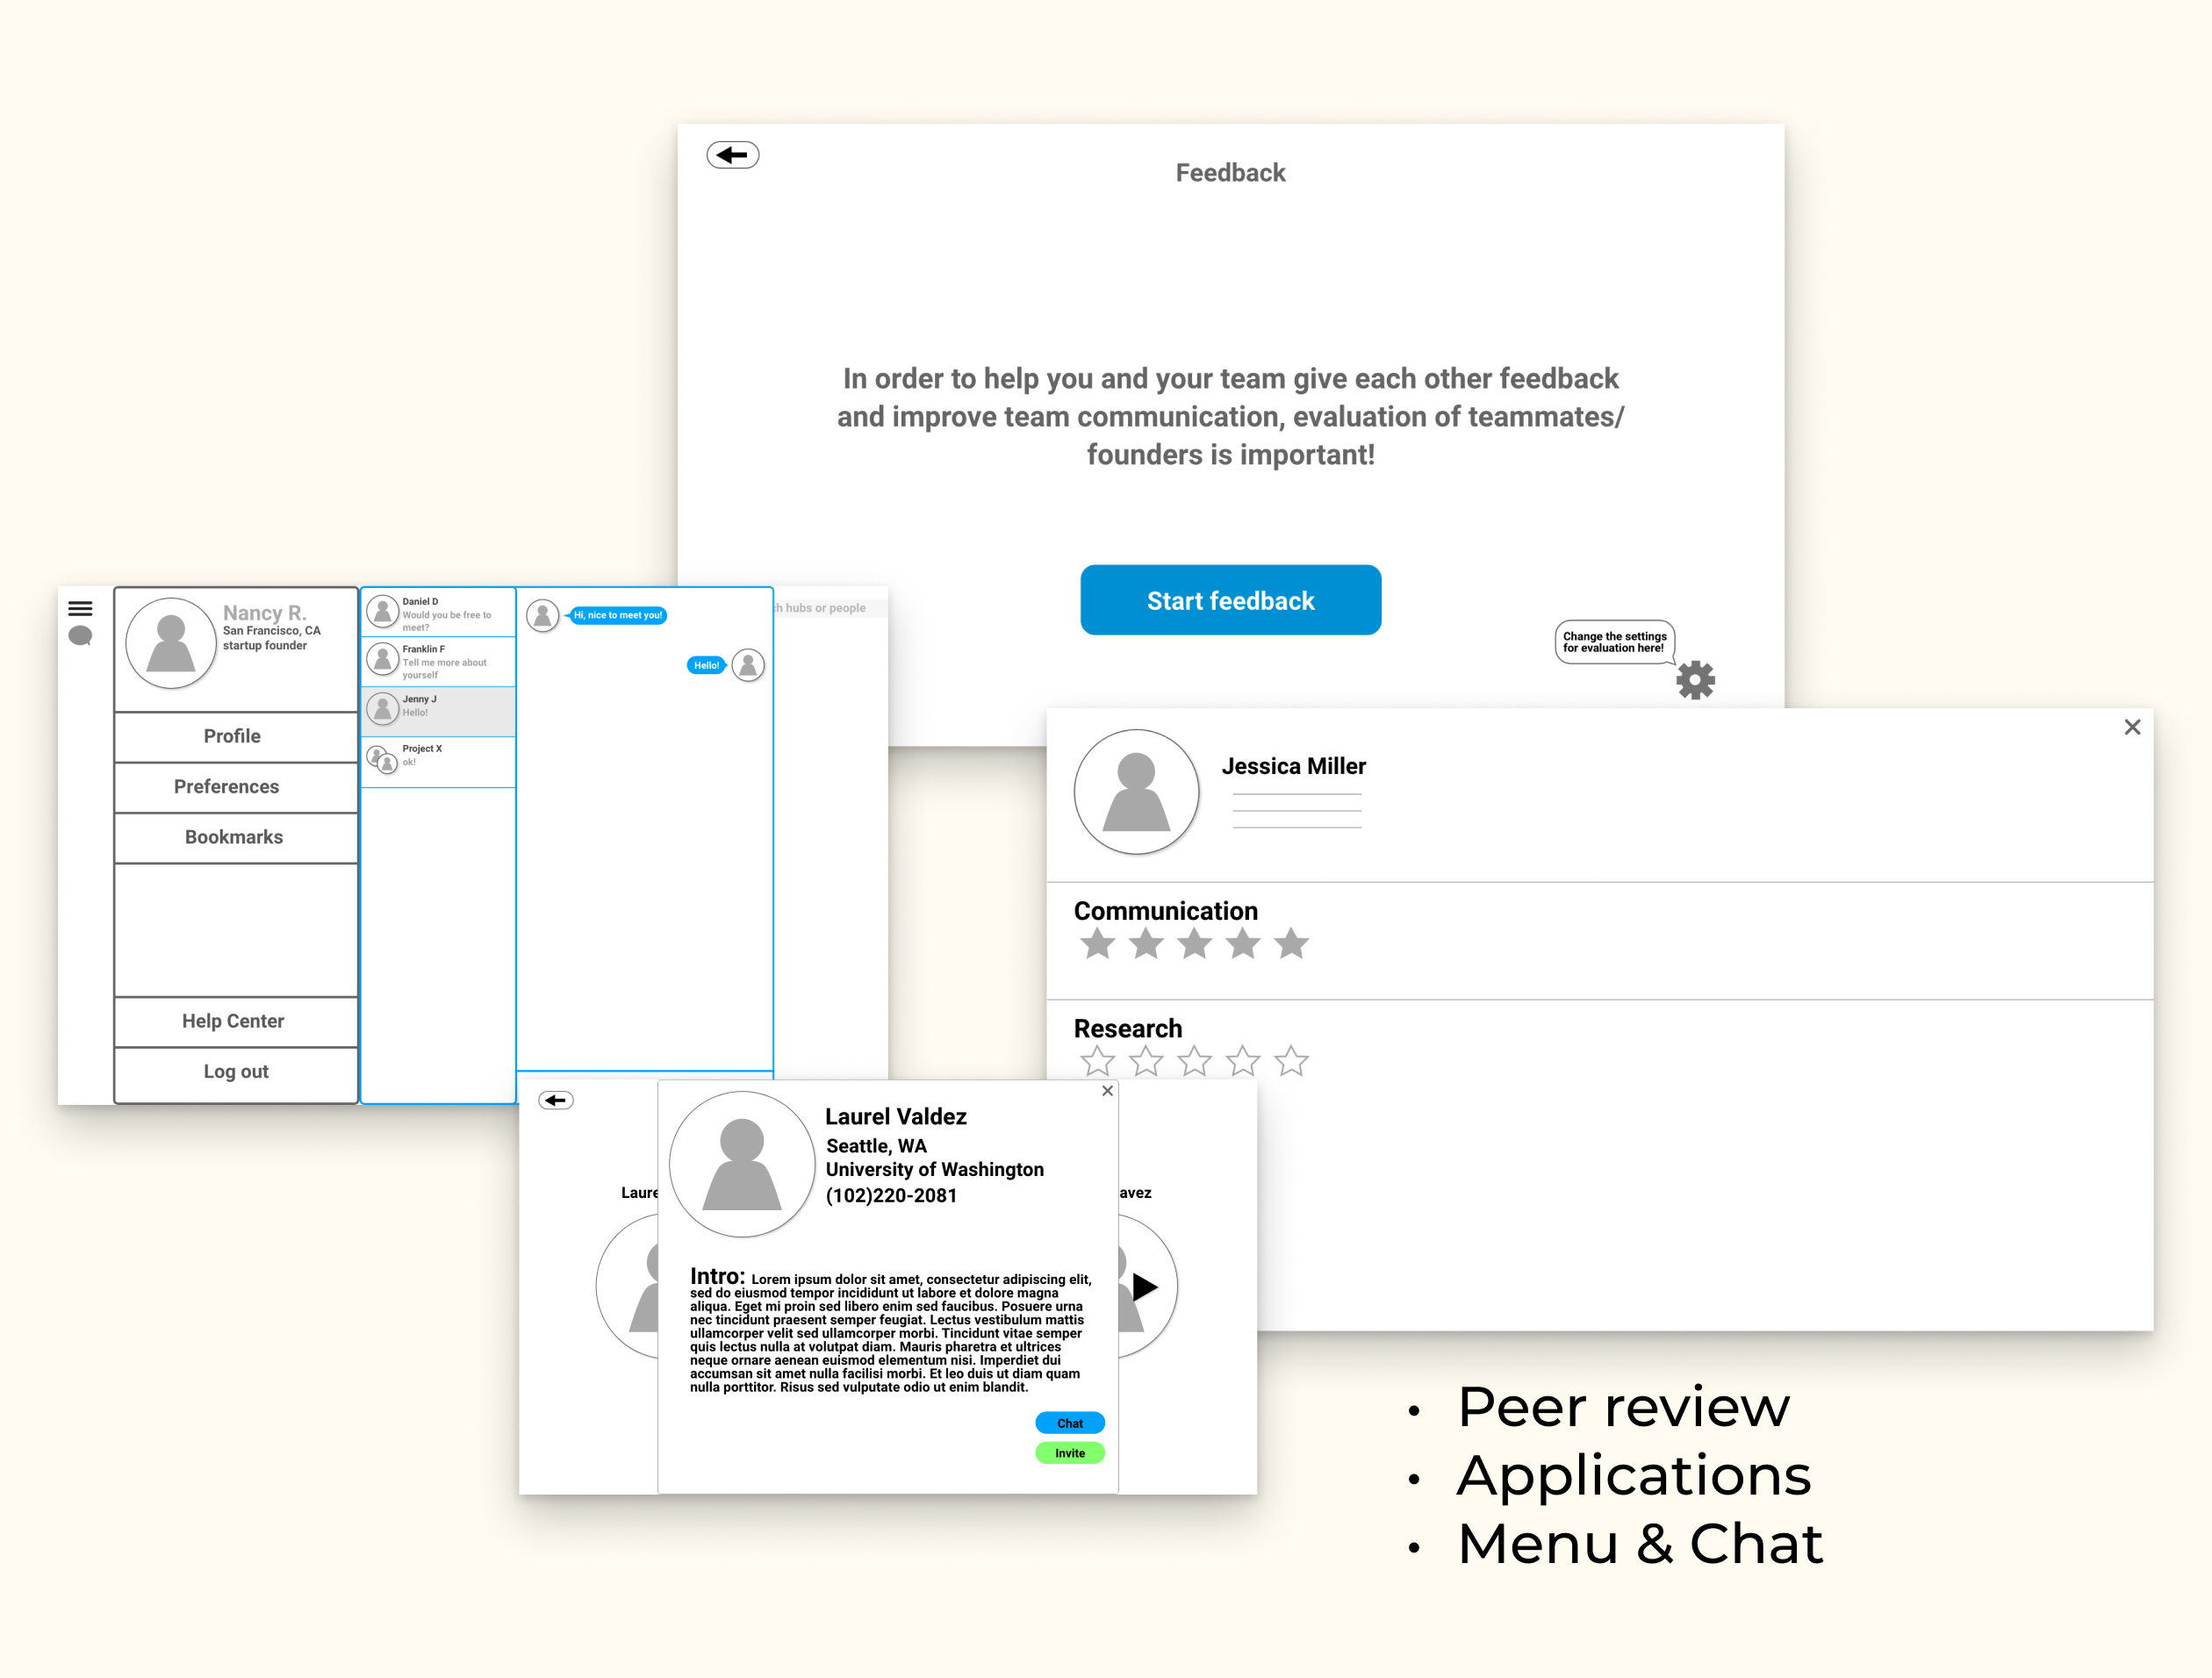 Medium-fidelity mock up of some key points in evaluation, menu and chat, and application review.